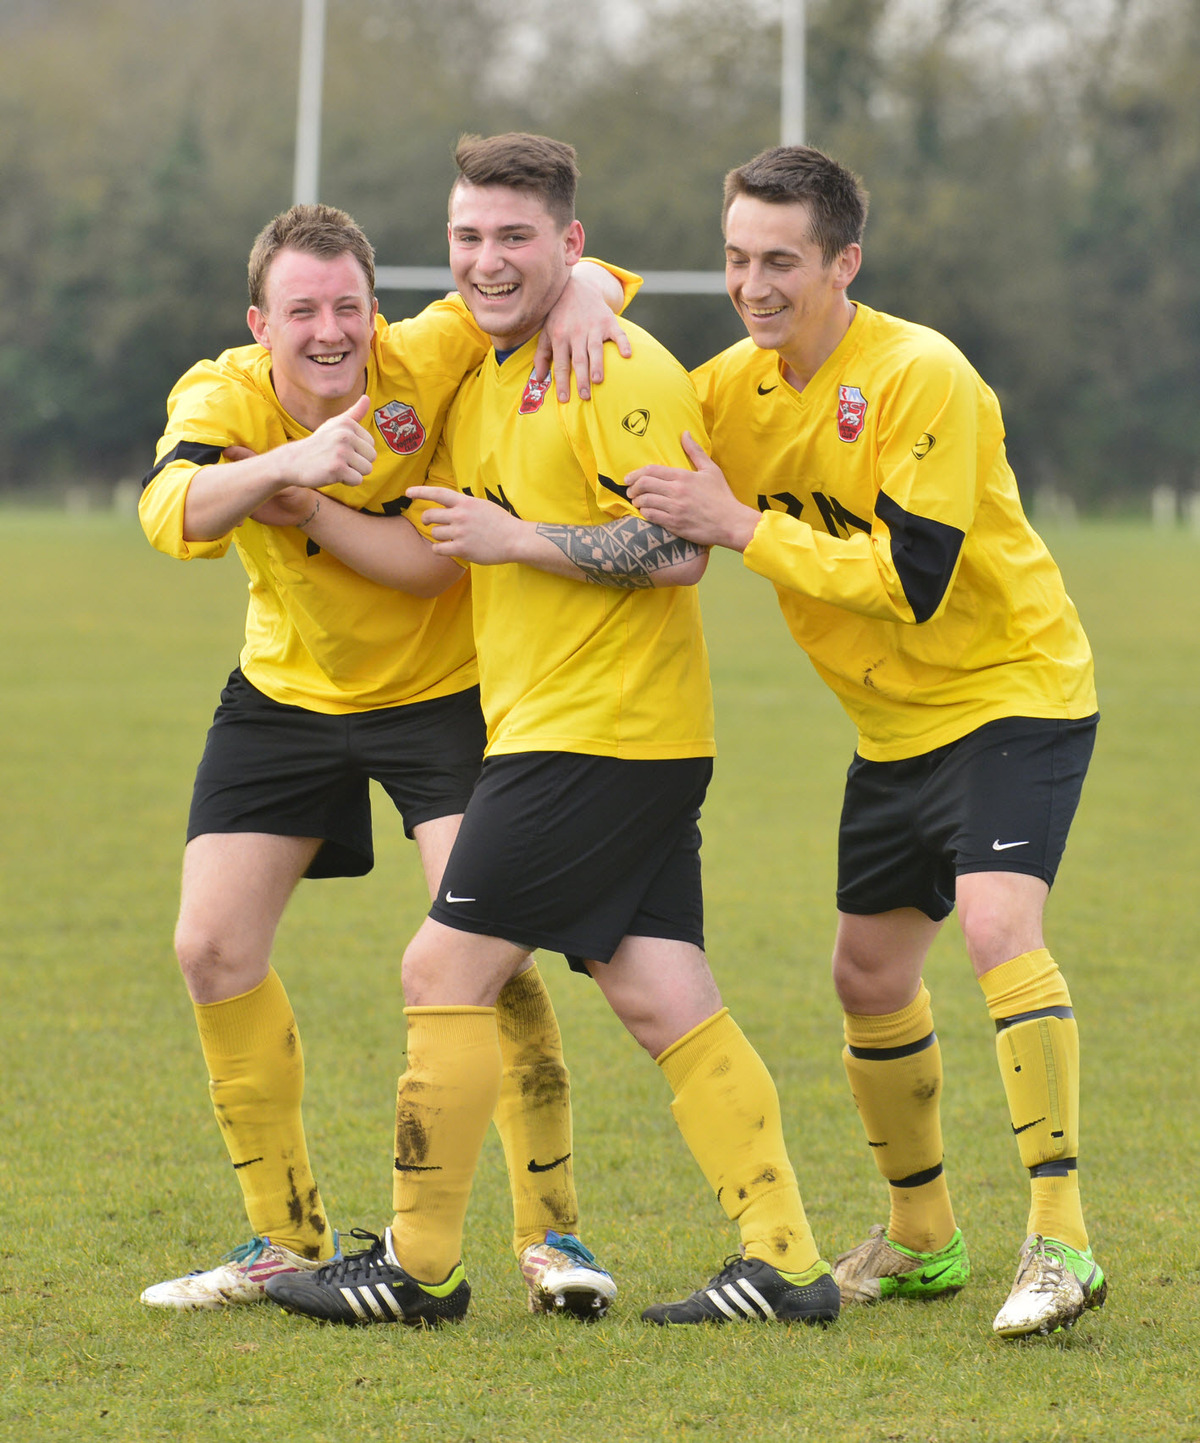 AFC Valley's Yousif Shahab (centre) celebrates scoring one of his two goals in the 4-0 home win over Sporting Headington Academicals in Division 1